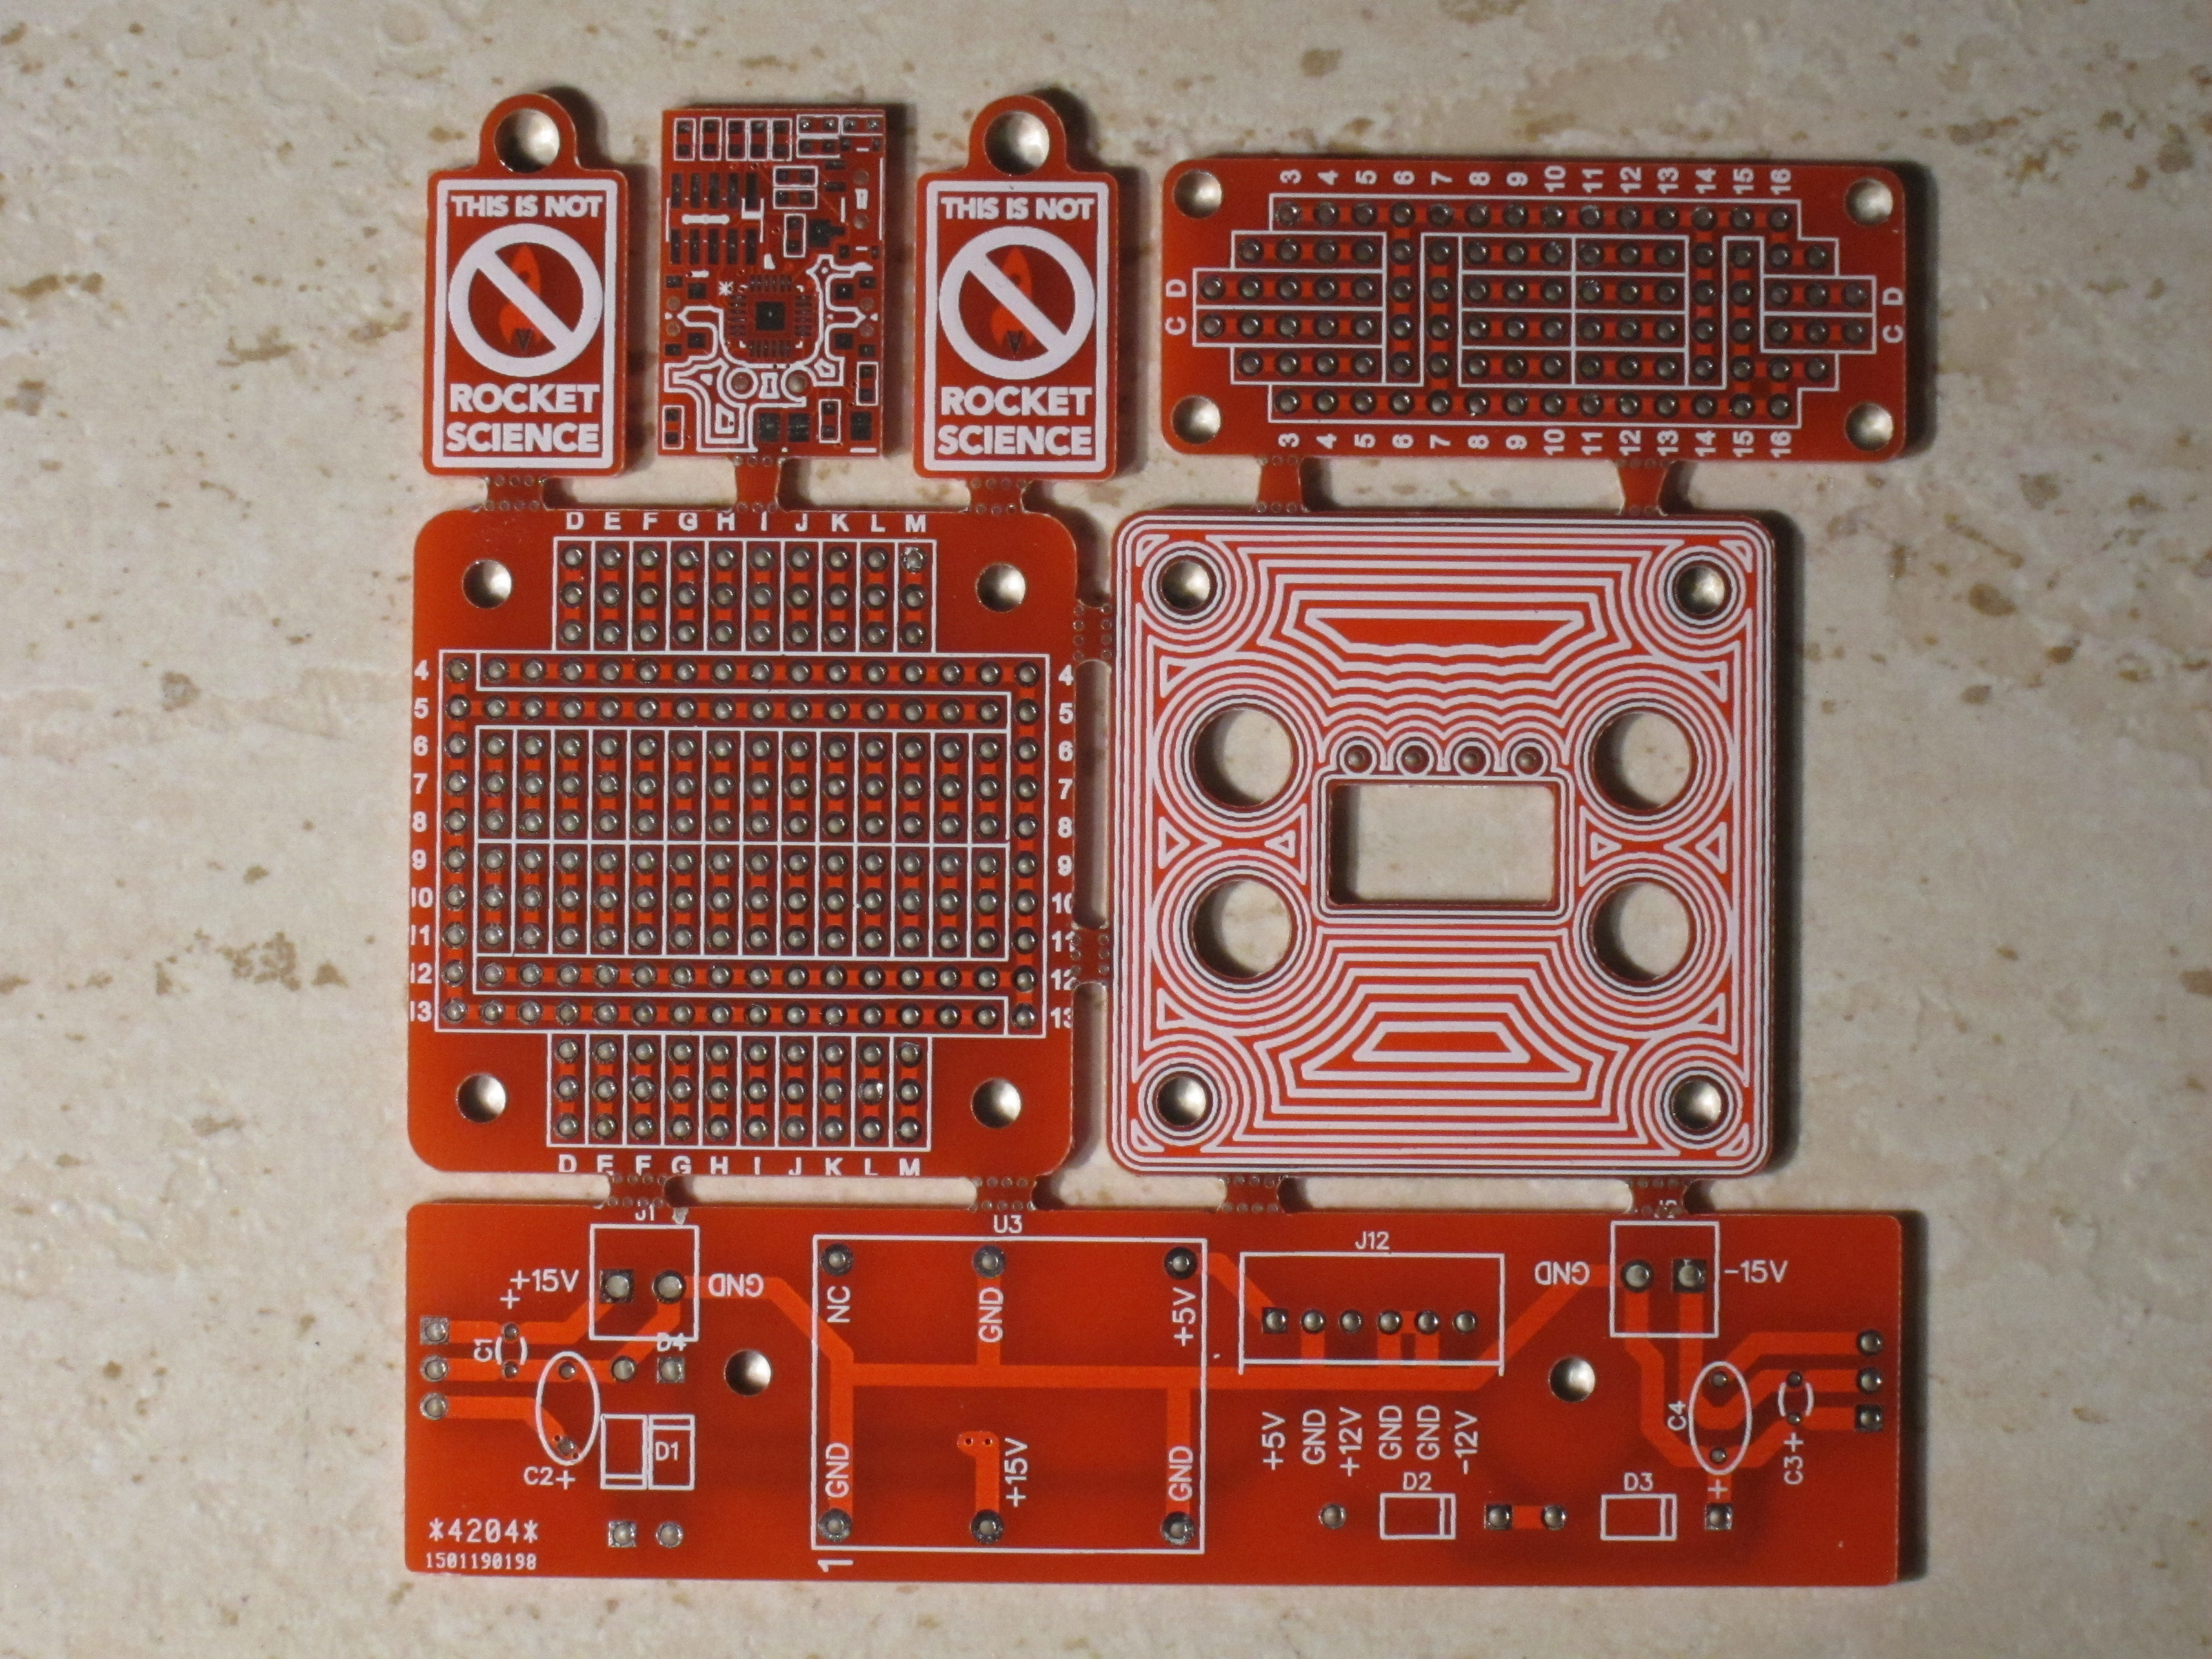 PCB Panelizer & Gerber Tool Suite | This is not rocket science